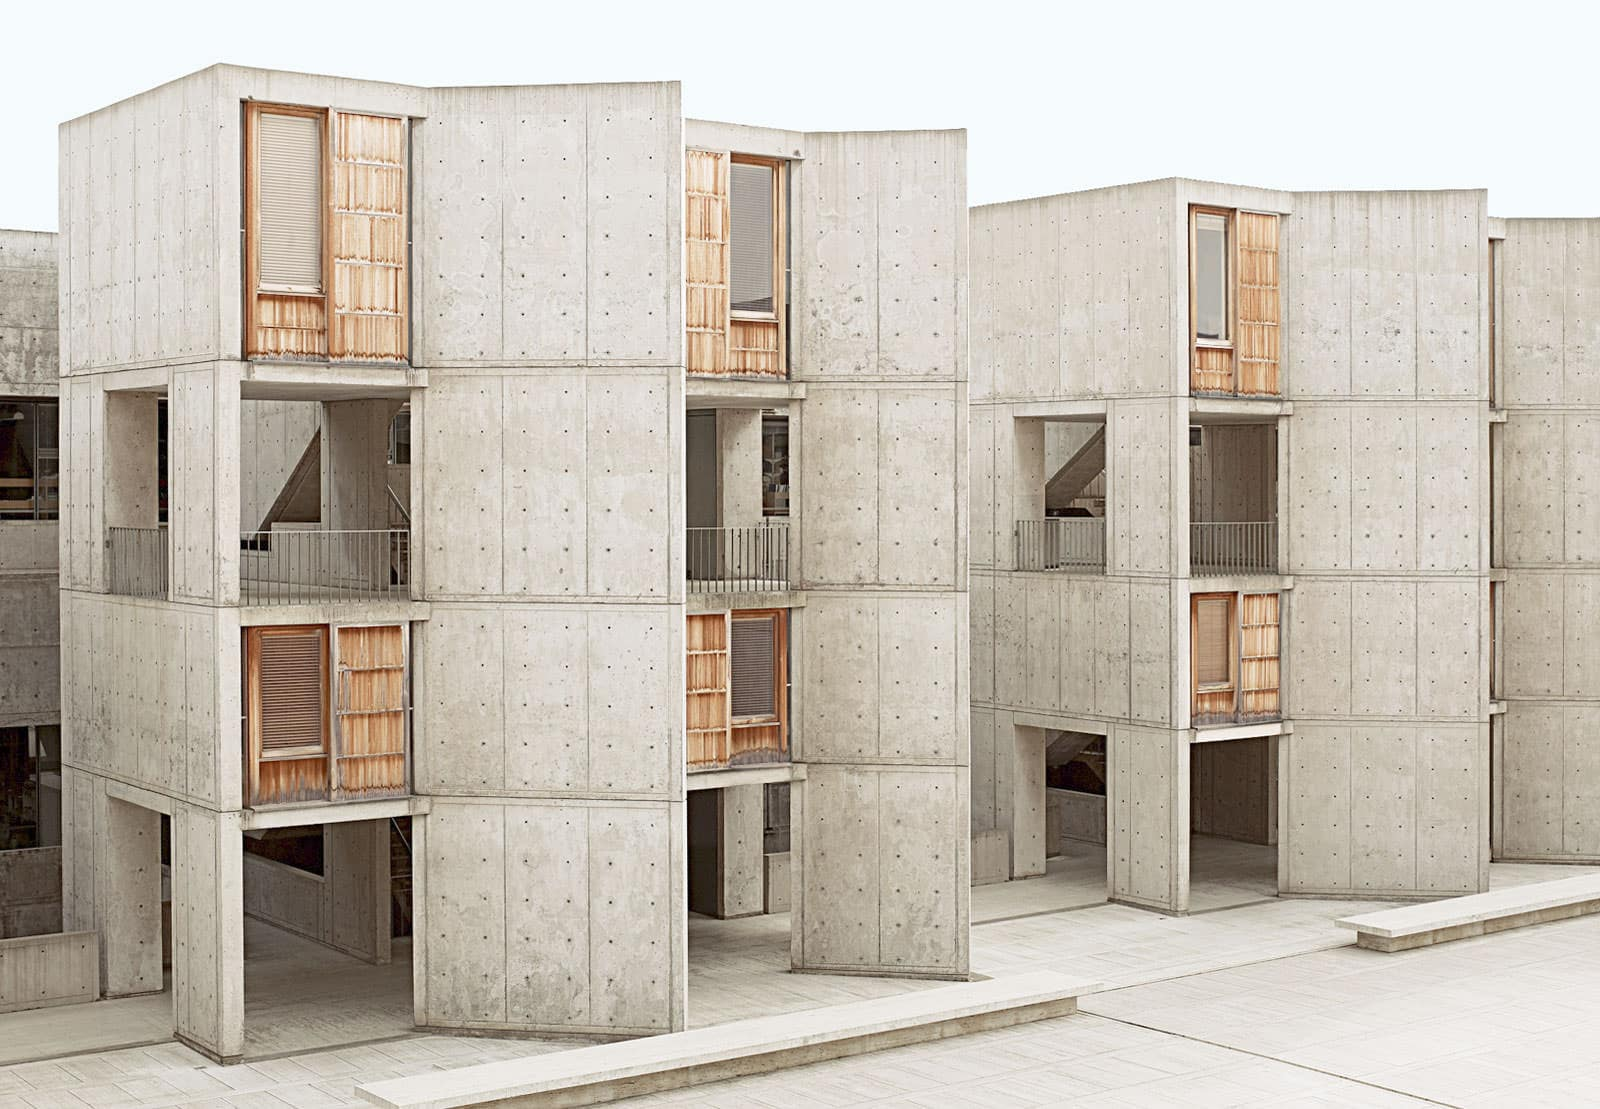 louis kahn and the salk institute essay Kahn's salk institute: measuring the immeasurable the salk institute is perhaps the most famous project of architect louis kahn it is an attempt by kahn and his client, jonas salk, to connect the disciplines of art and science as a synthesis of intuition and reason along with a number of other.